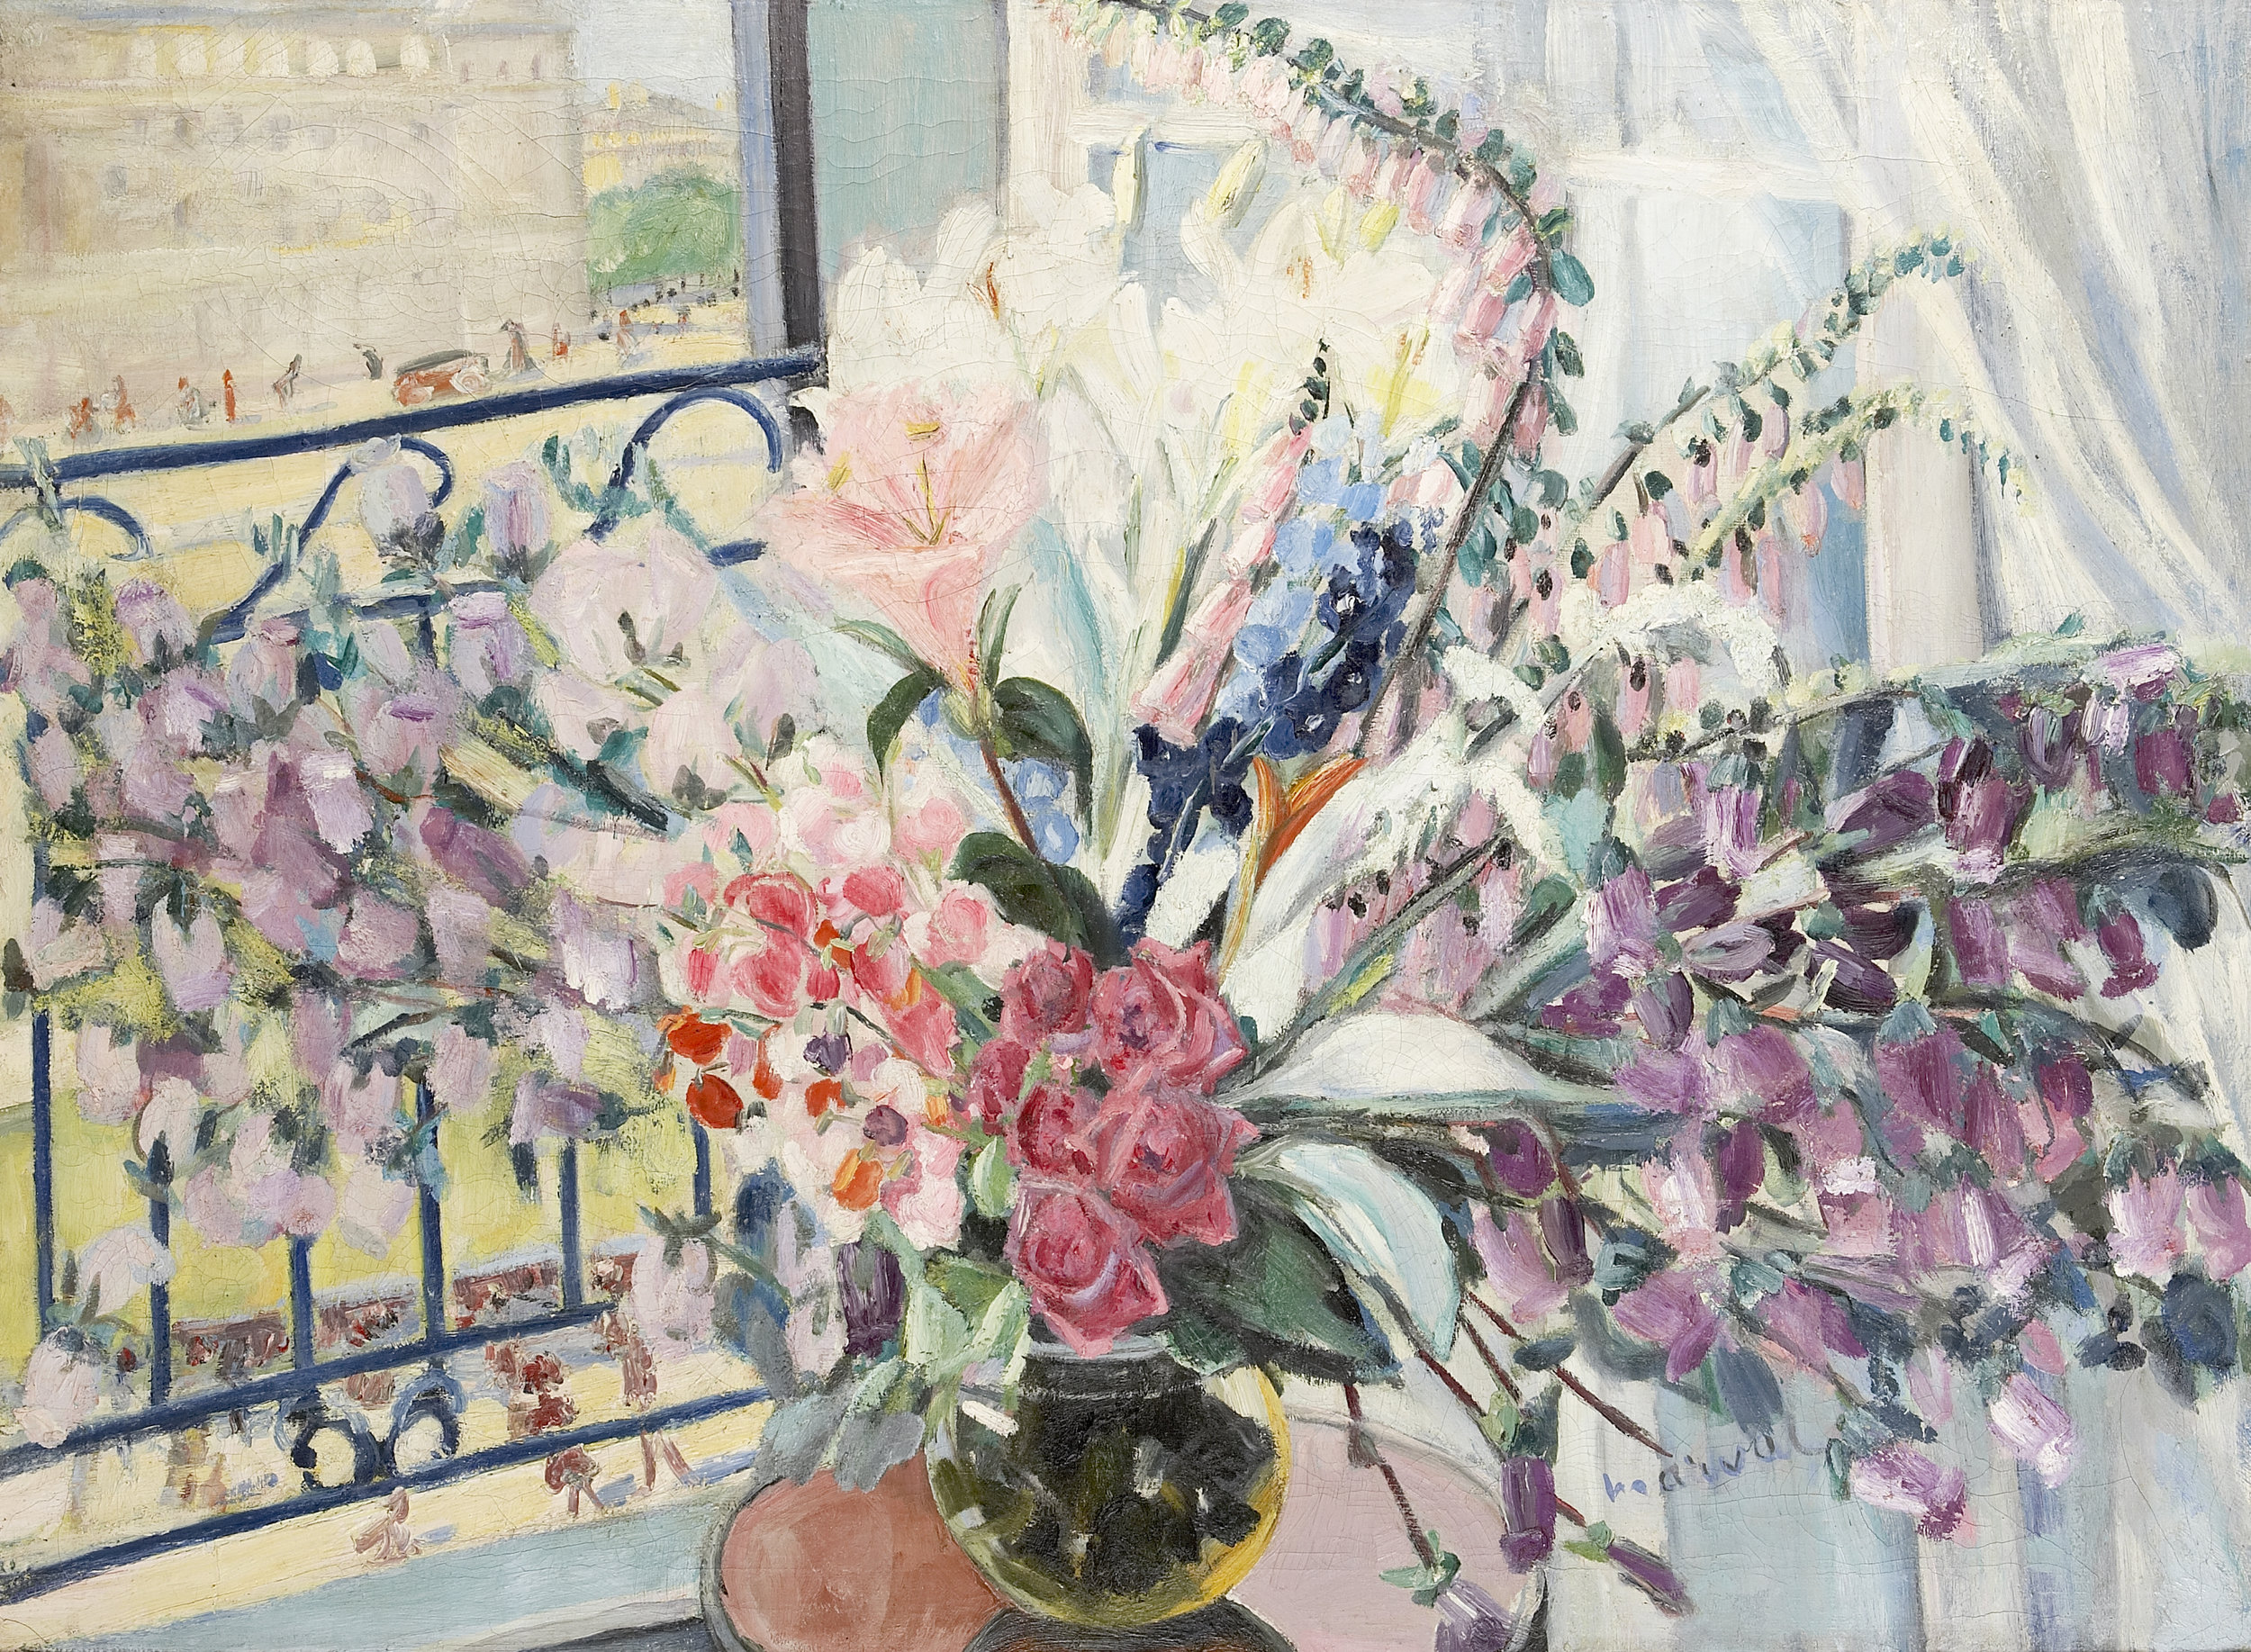 Grand Bouquet à ma Fenêtre, Jacqueline Marval. Oil on canvas, 110 x 150 cm. Private collection.